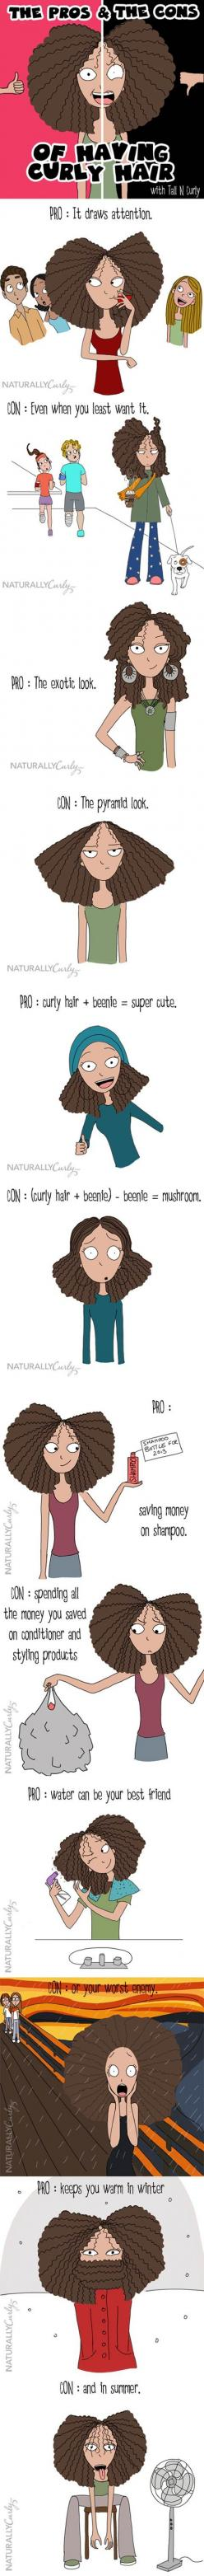 Perfect...: Naturally Curly, Hair Problems, My Life, So True, Natural Hair, Curly Girl, Curly Hair, Curlyhair